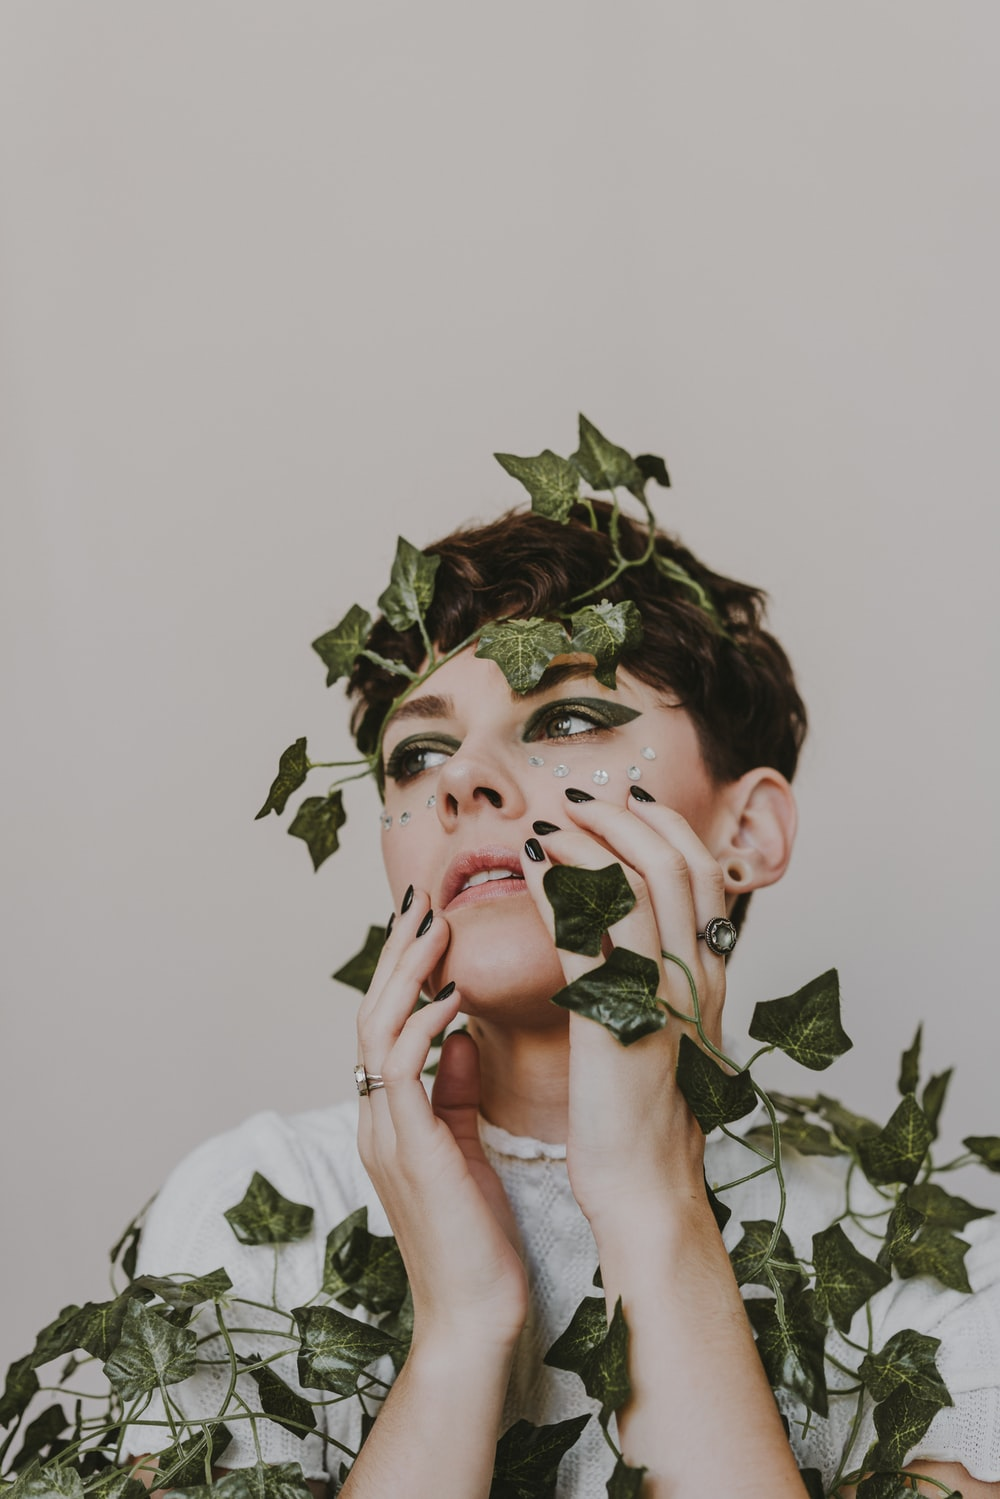 woman in white shirt holding green leaves